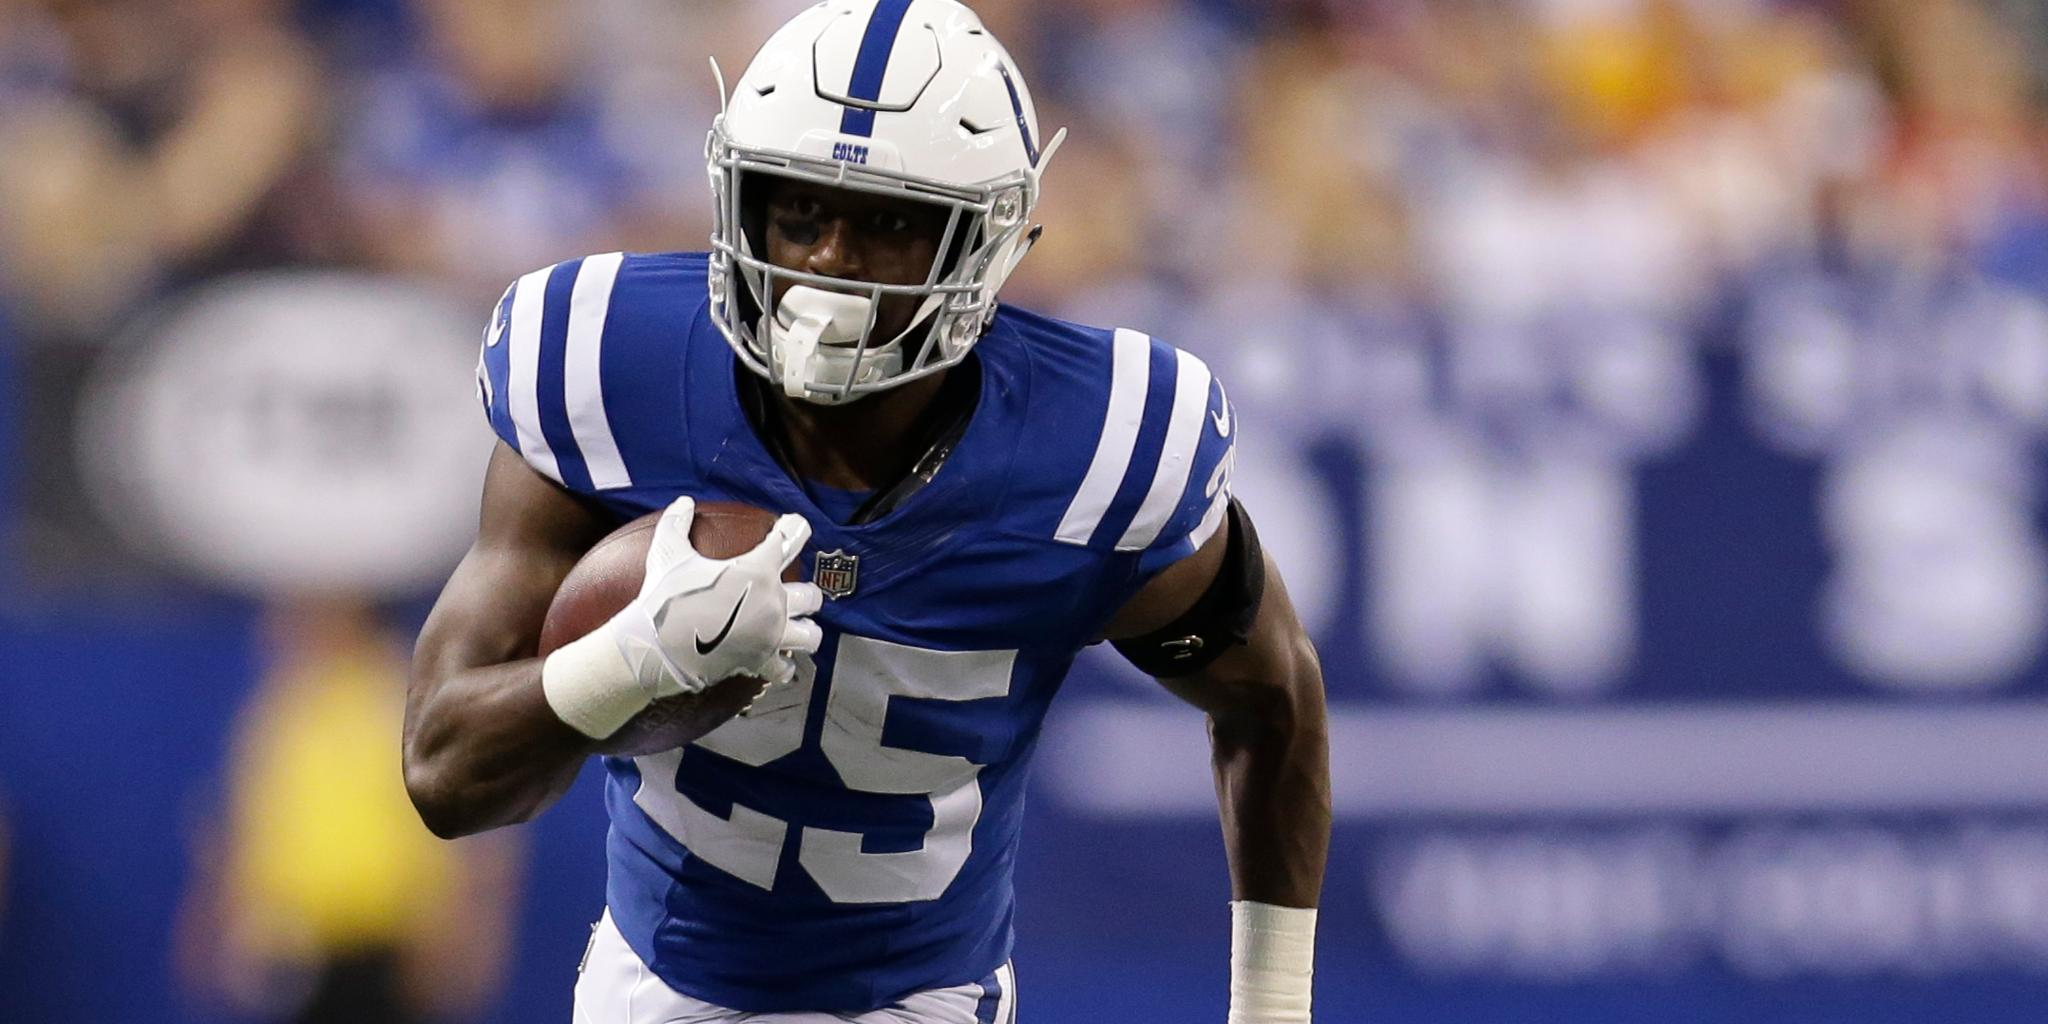 'Everyone wants to be the top dog.'  But he's ready to do more in the @Colts backfield: https://t.co/nI1WtQsSxu https://t.co/JGmqJb6G7e